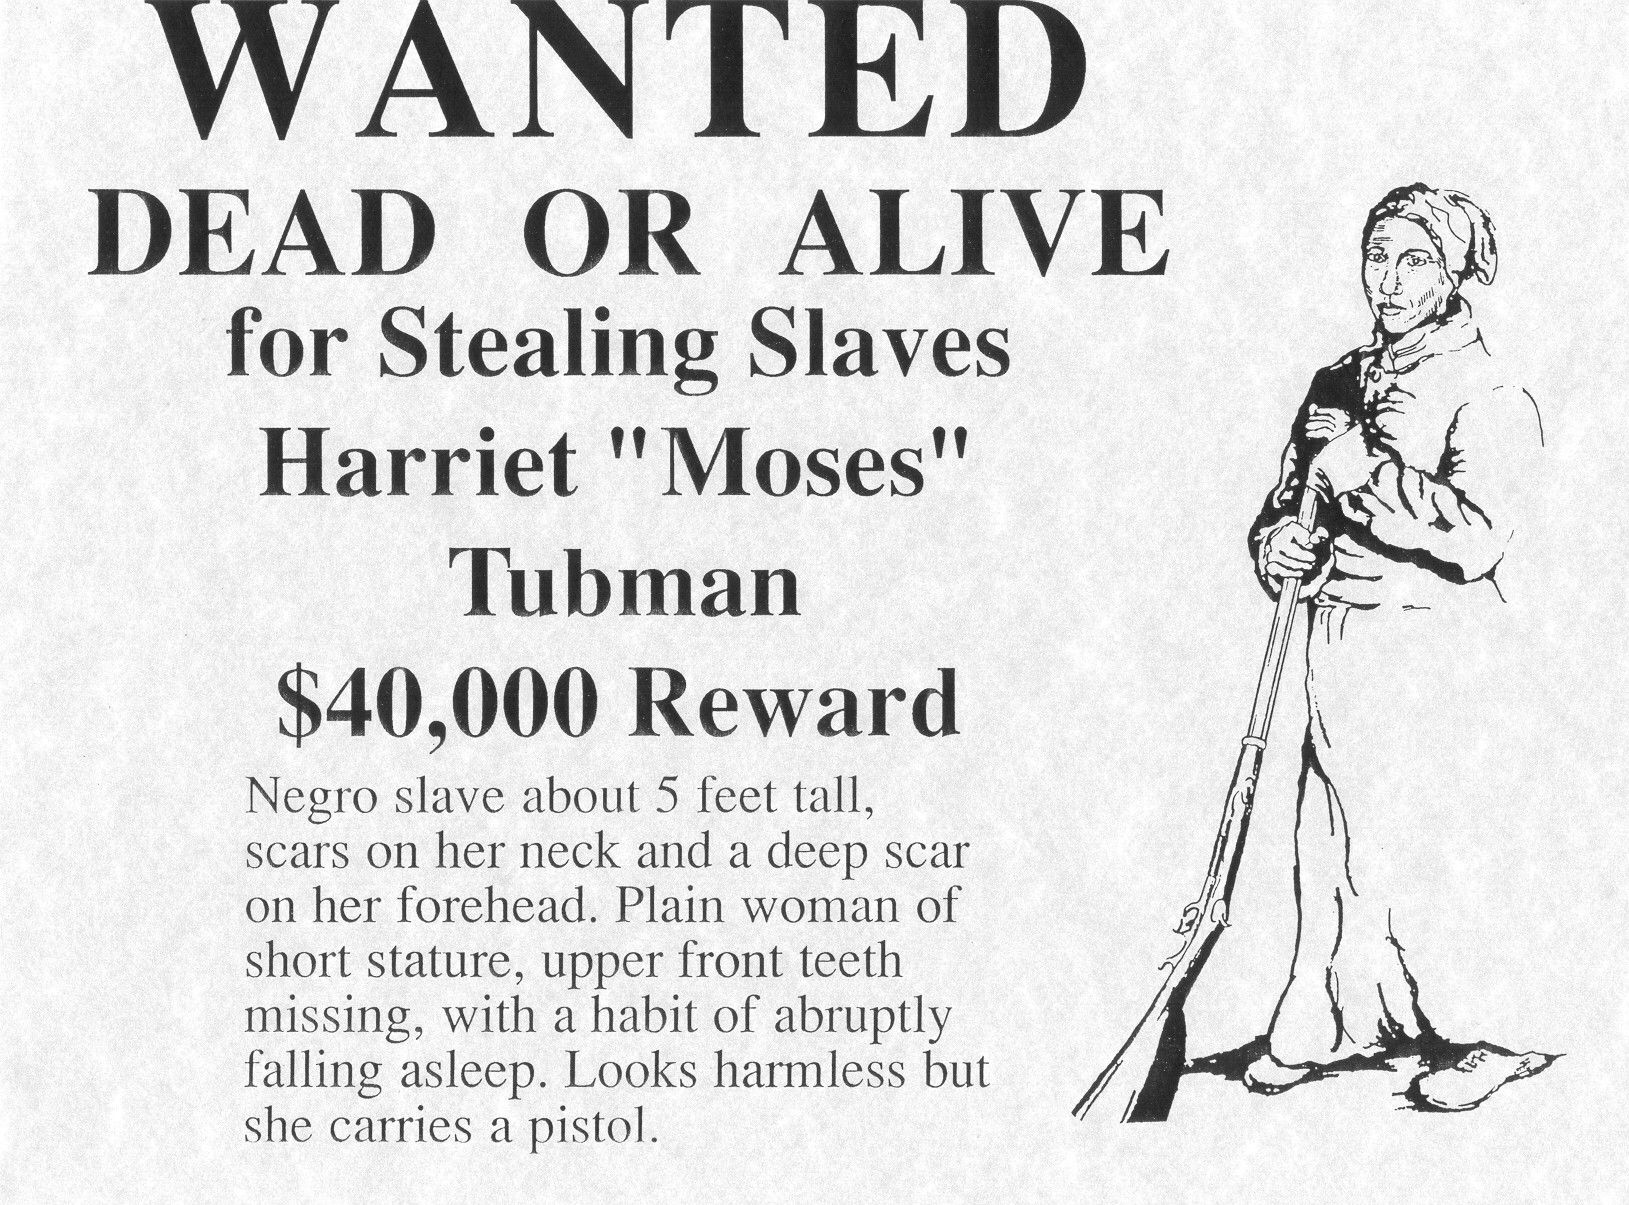 life of harriet tubman Harriet tubman is a central figure in mid-19th-century history, culture, and politics she helped to free enslaved people as part of the underground railroad—a conductor of the underground railroad who was critical to creating and running a network of safe houses between the south and the north.